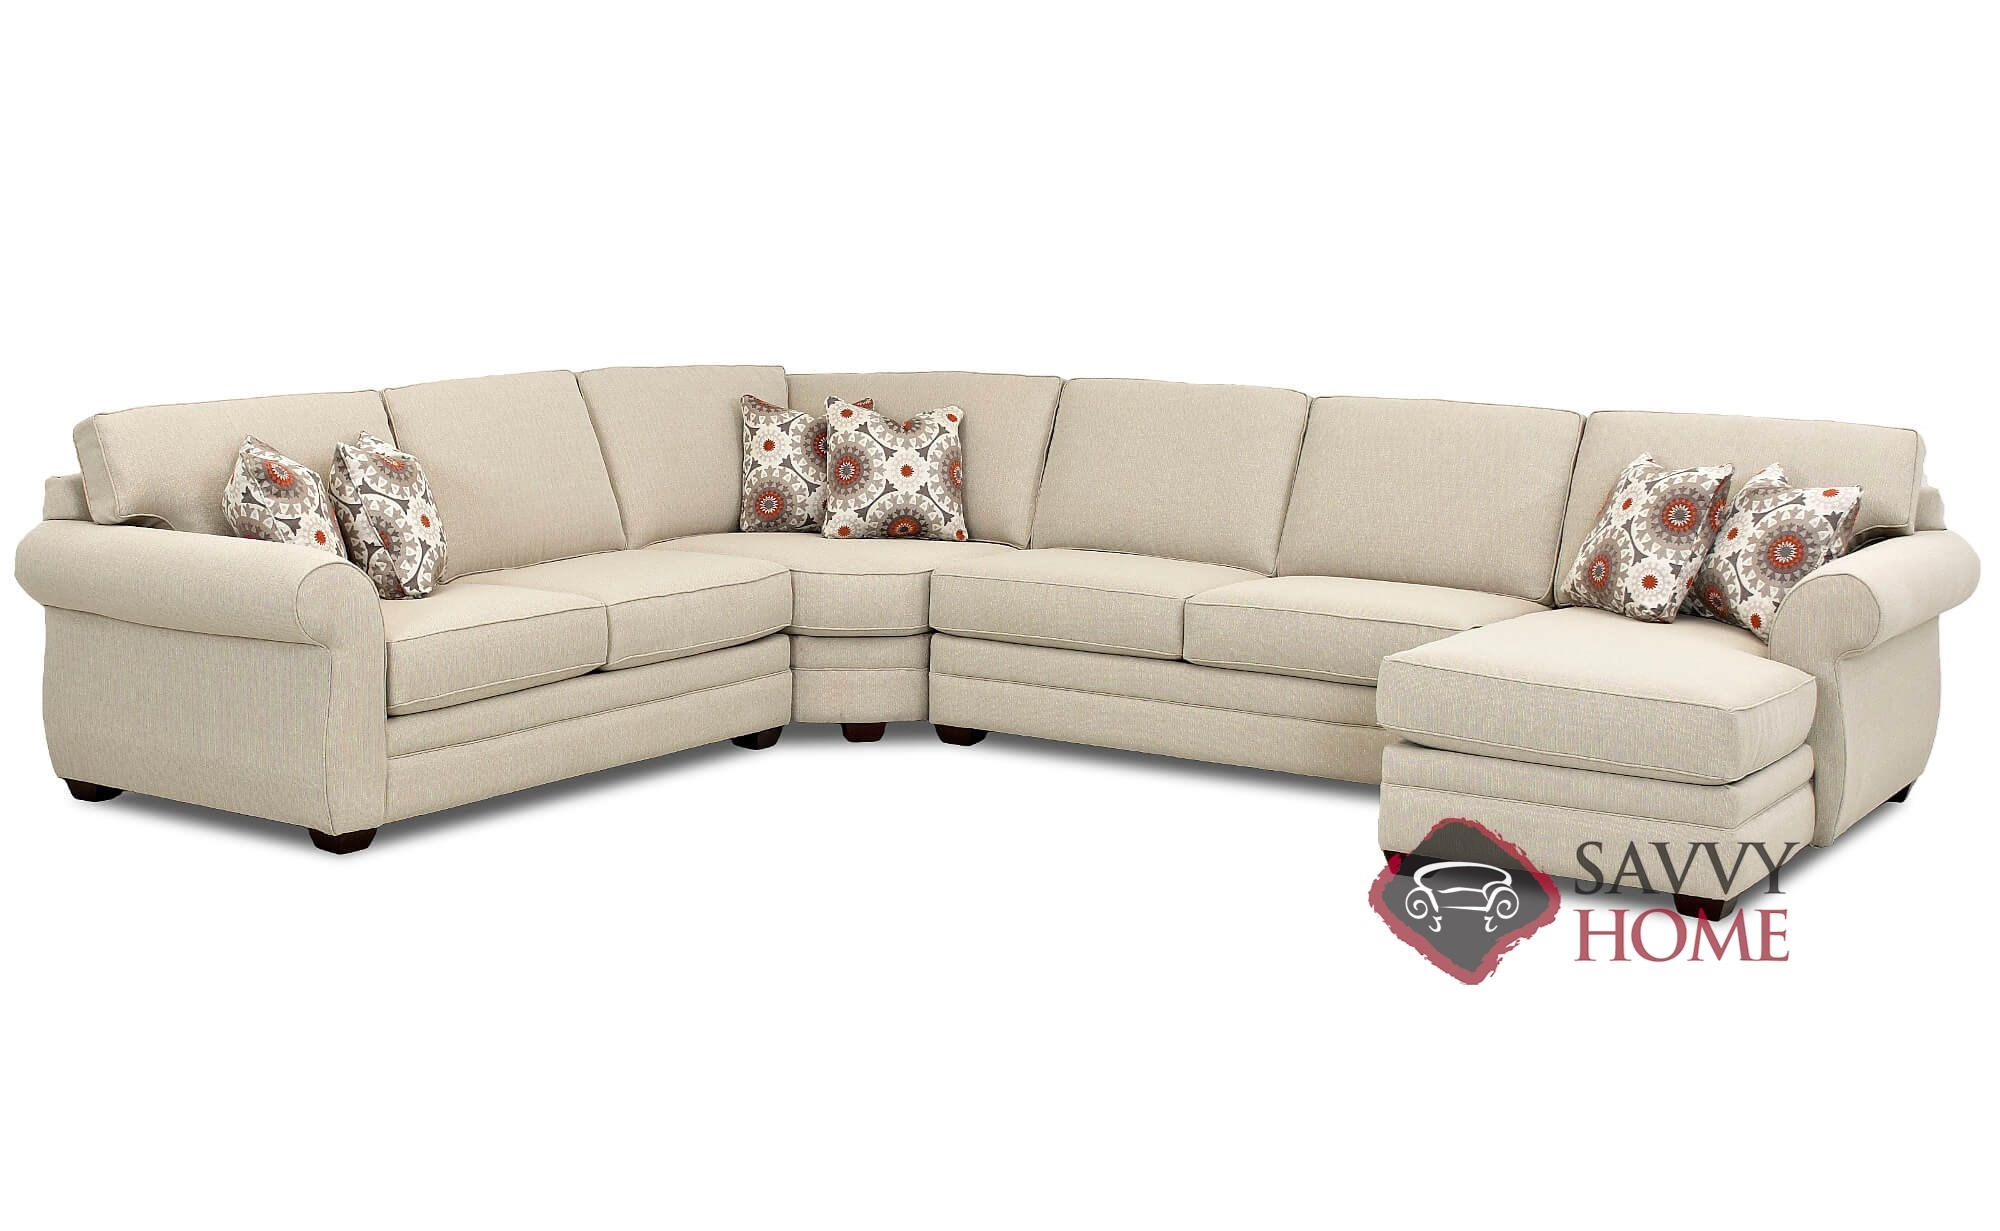 Canton by Savvy Fabric Sleeper Sofas True Sectional by ...